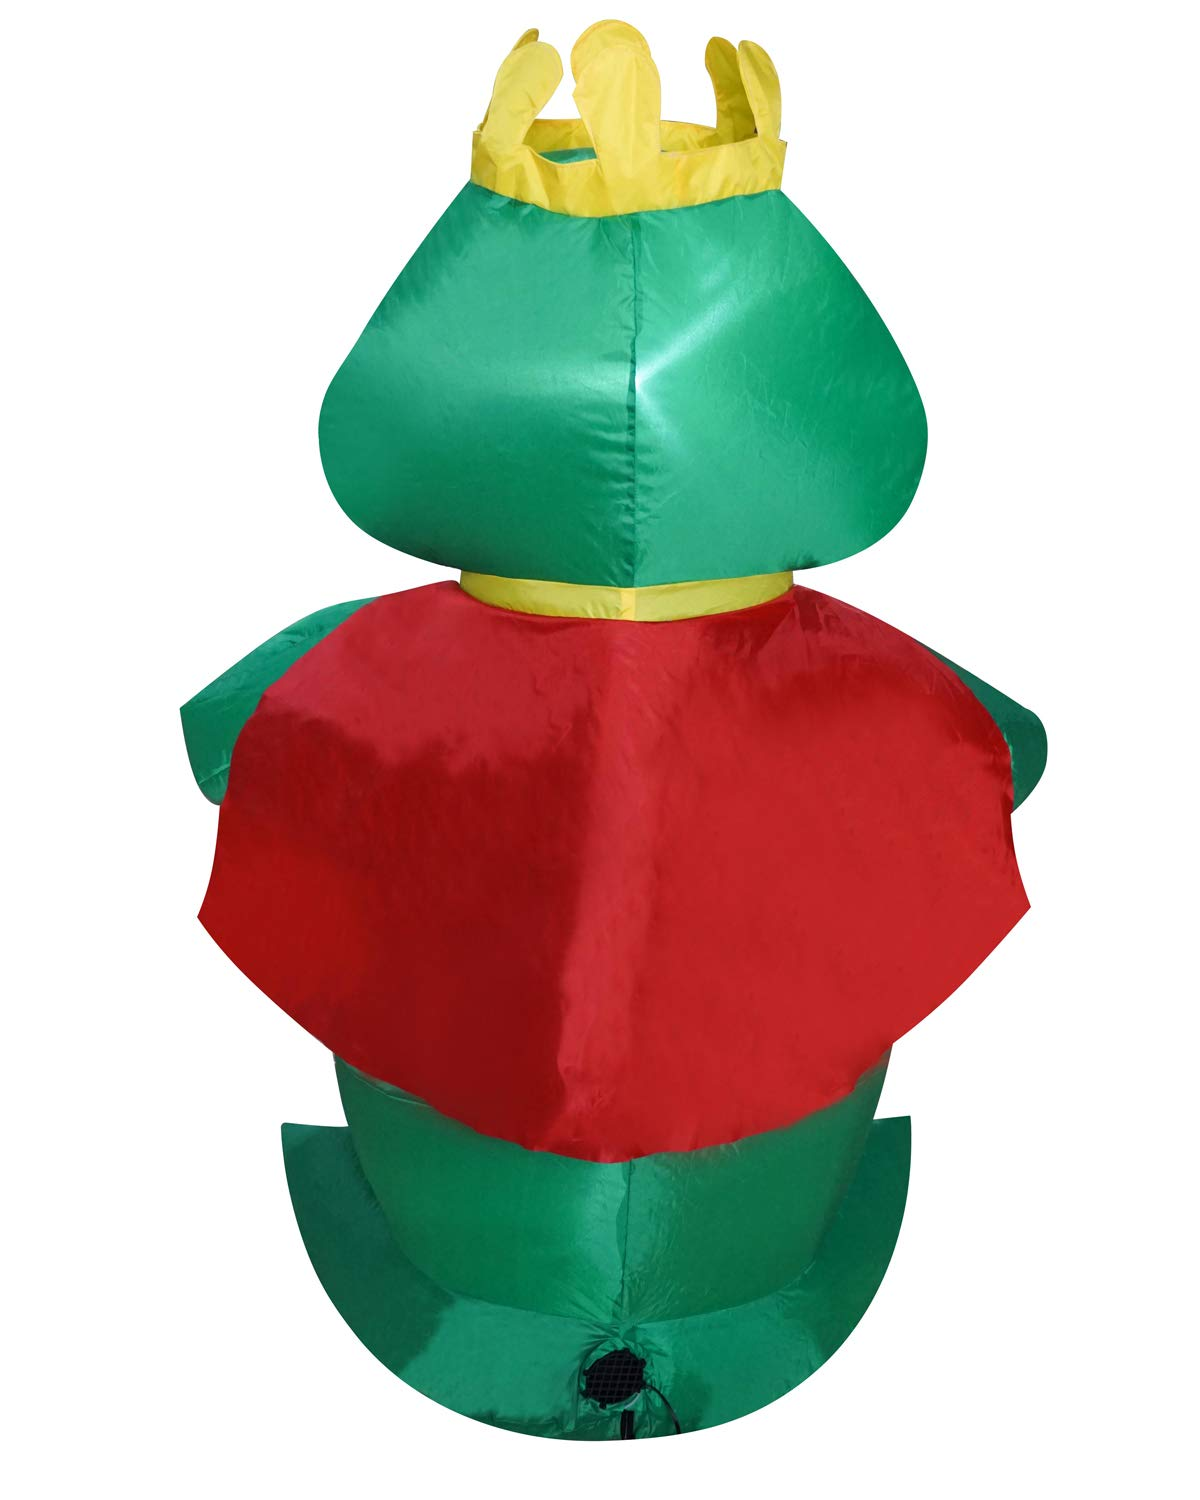 1330b1f76d4f8 SEASONBLOW 4 Ft Inflatable Birthday The Frog Prince Be My Valentine with  Sweet Heart Romantic Decorations for Wedding Anniversary Party